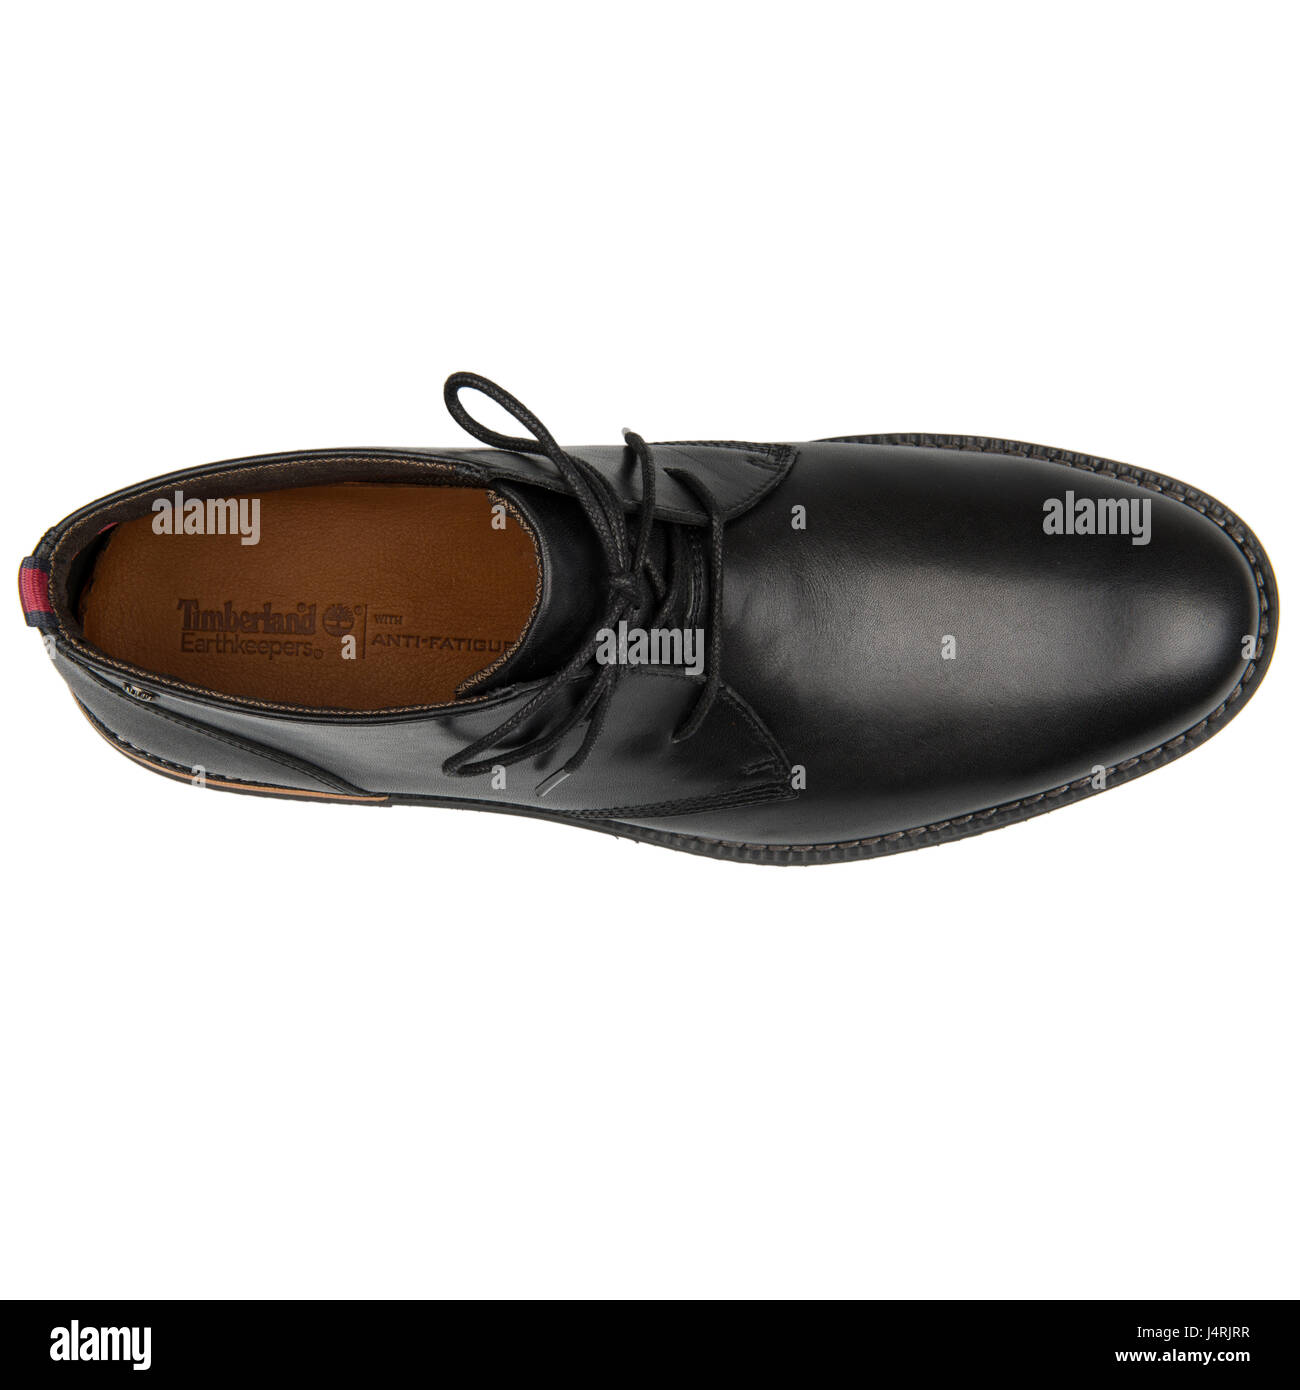 5213784f4ecfb Timberland Earthkeepers Brook Park Chukka Black Leather Shoes - 5512A -  Stock Image